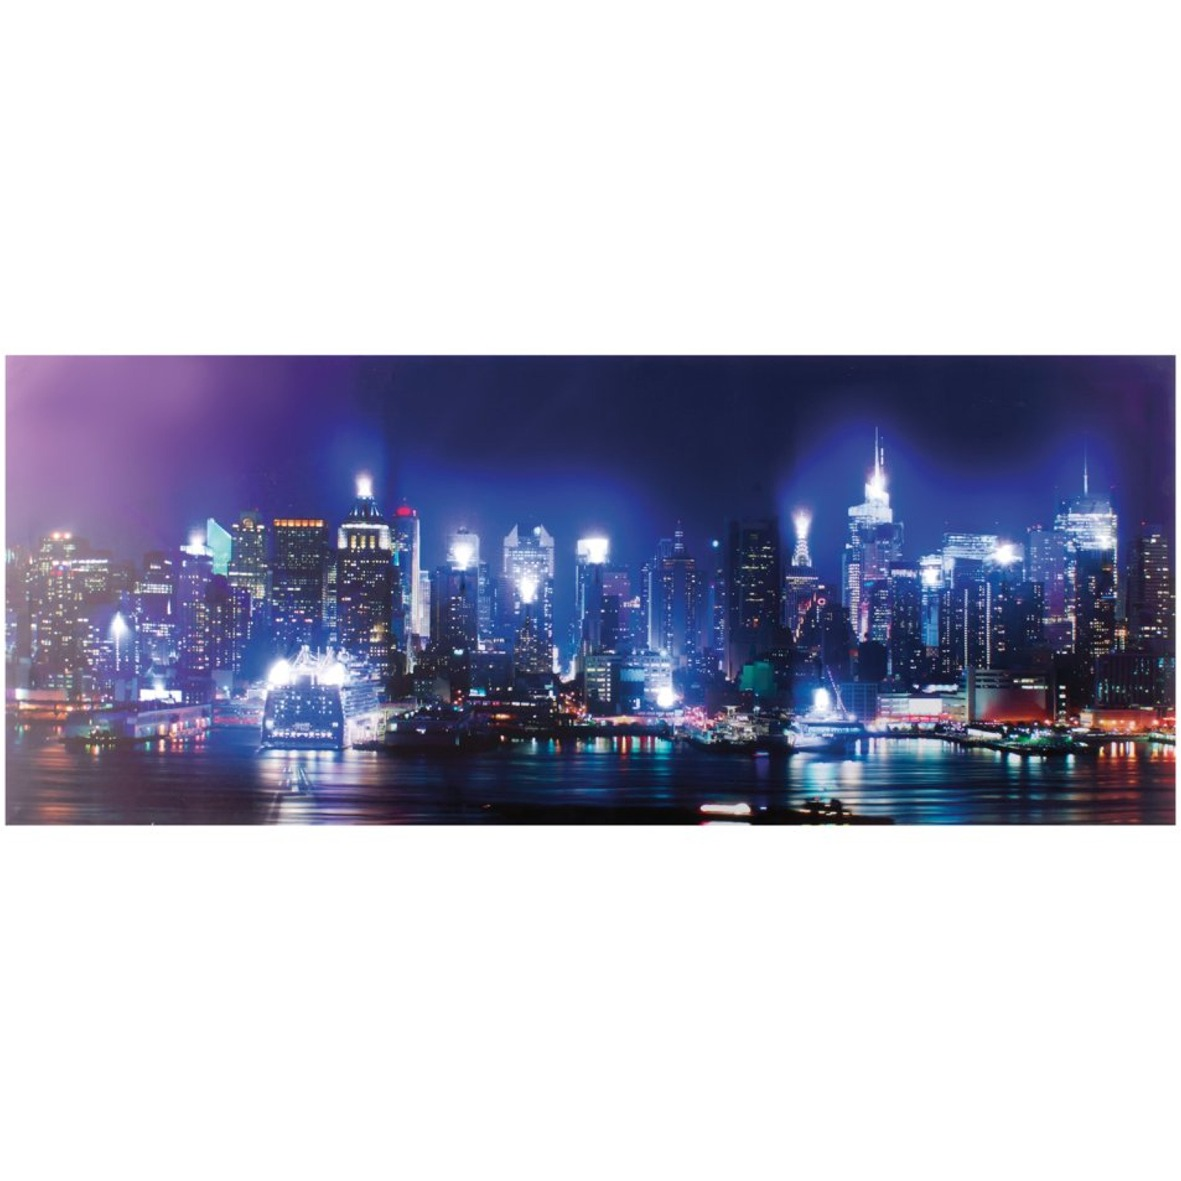 led bilder wandbild retro beleuchtet bild schild leinwand new york paris london ebay. Black Bedroom Furniture Sets. Home Design Ideas